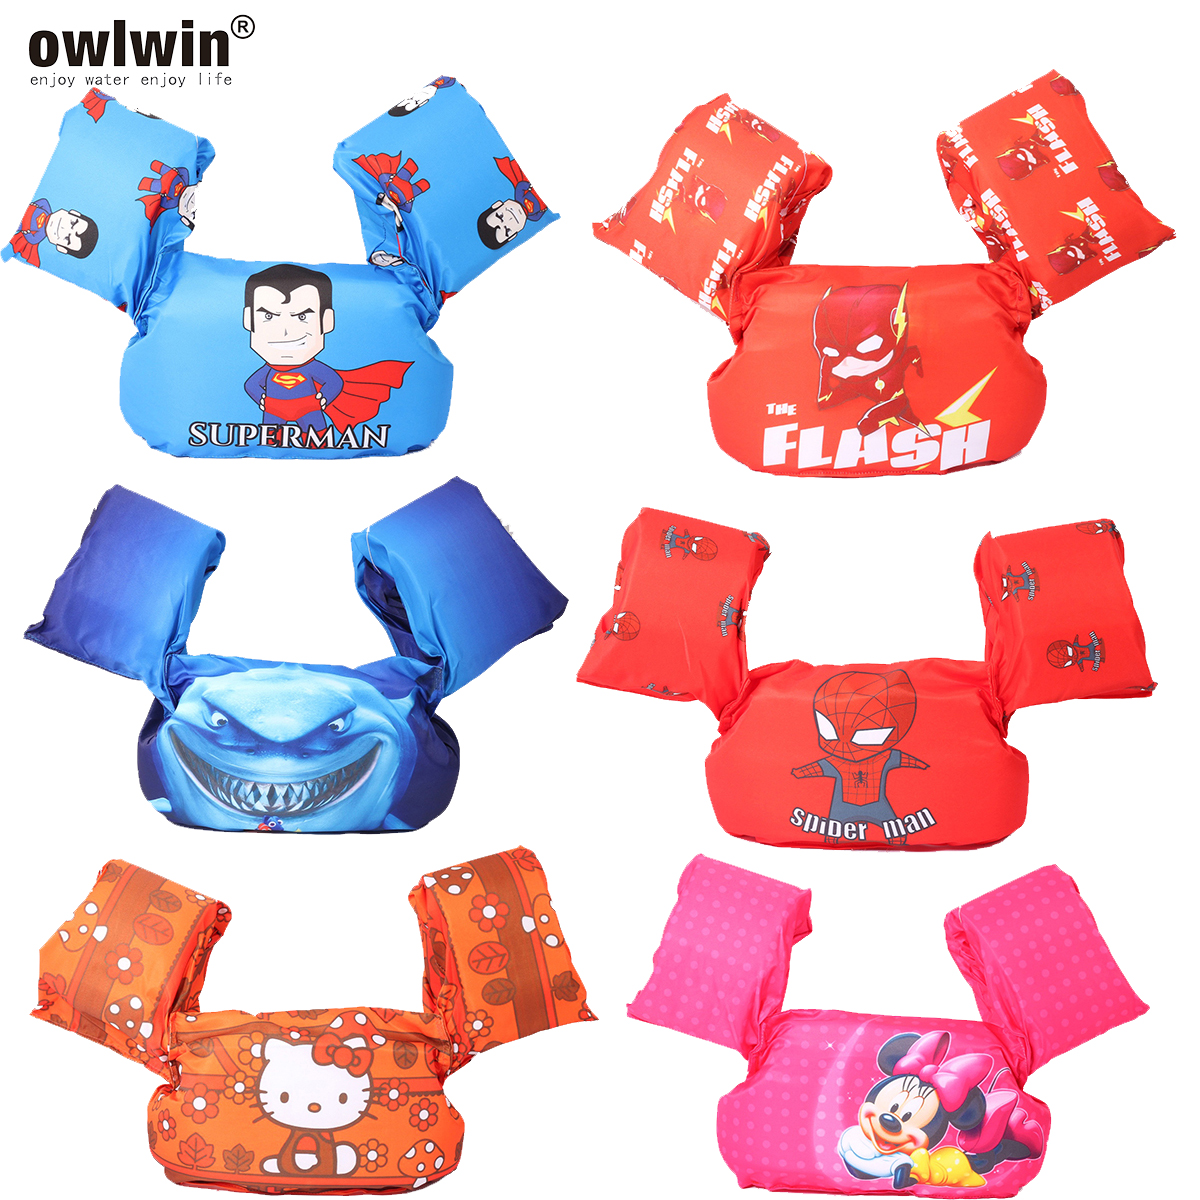 Puddle Jumper Baby Boy Girl Child Children  Life Jacket Life Vest Dropshipper Link